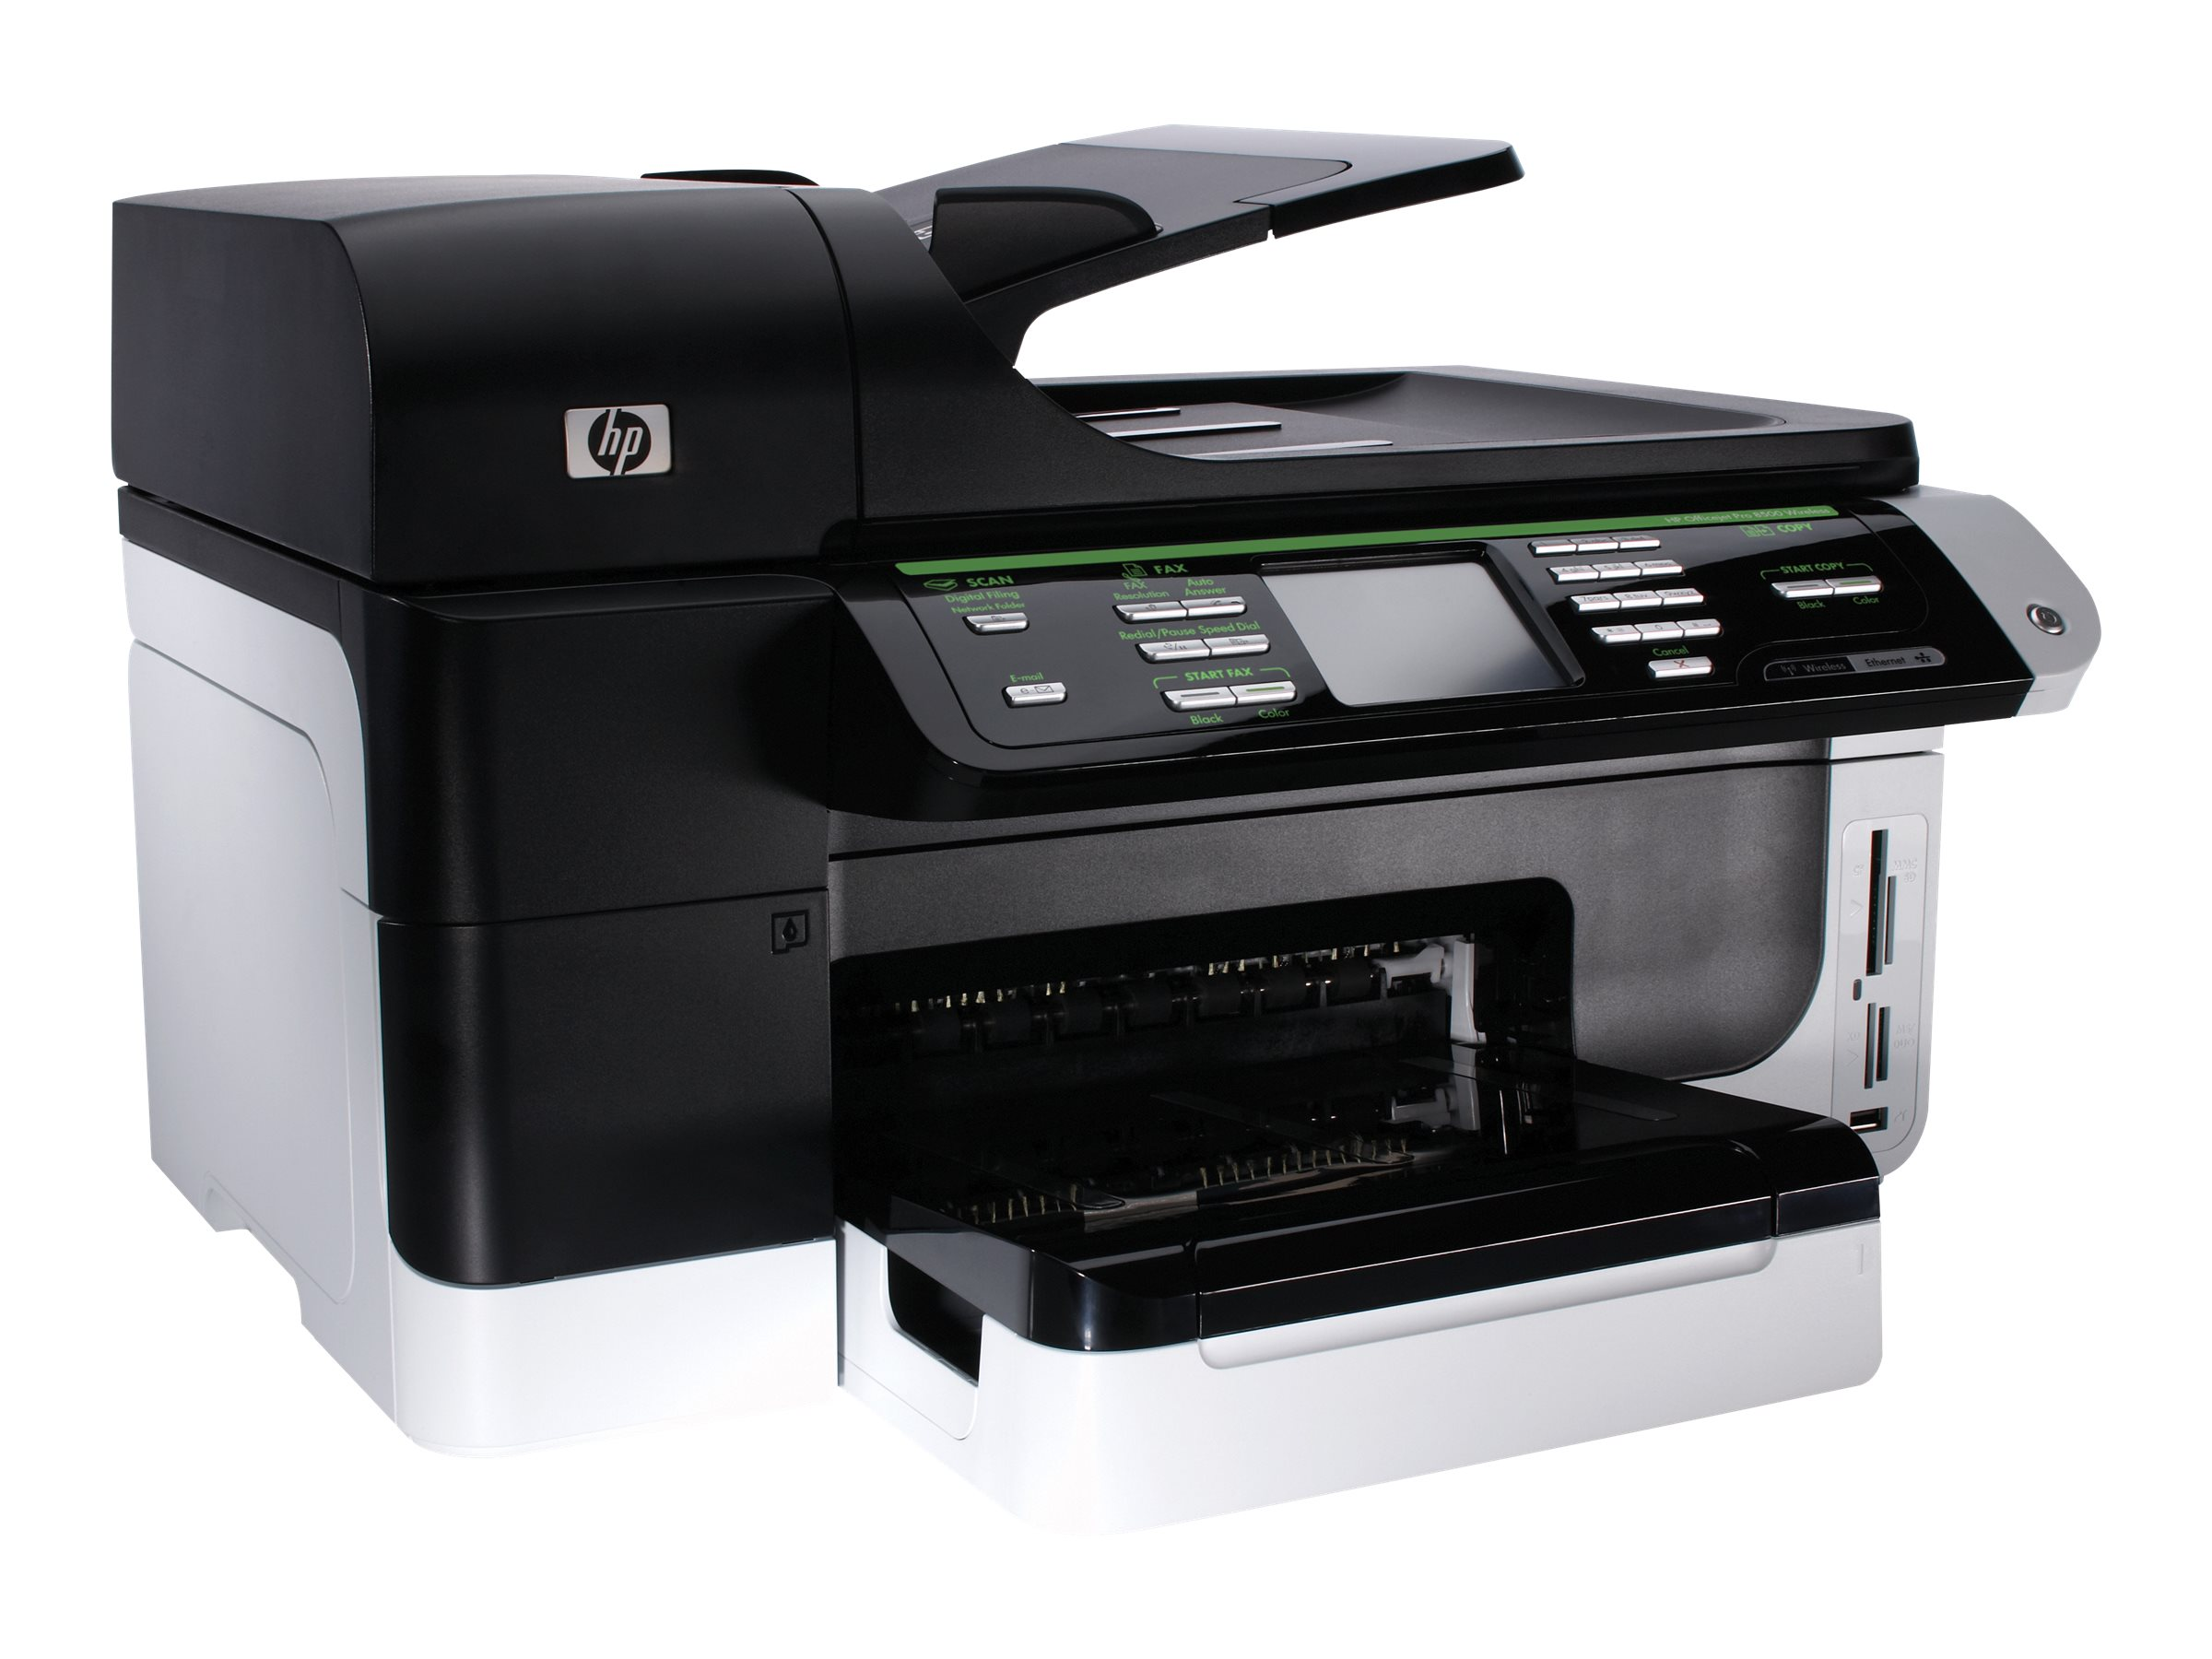 HP Officejet Pro 8500 driver download - Printer Drivers